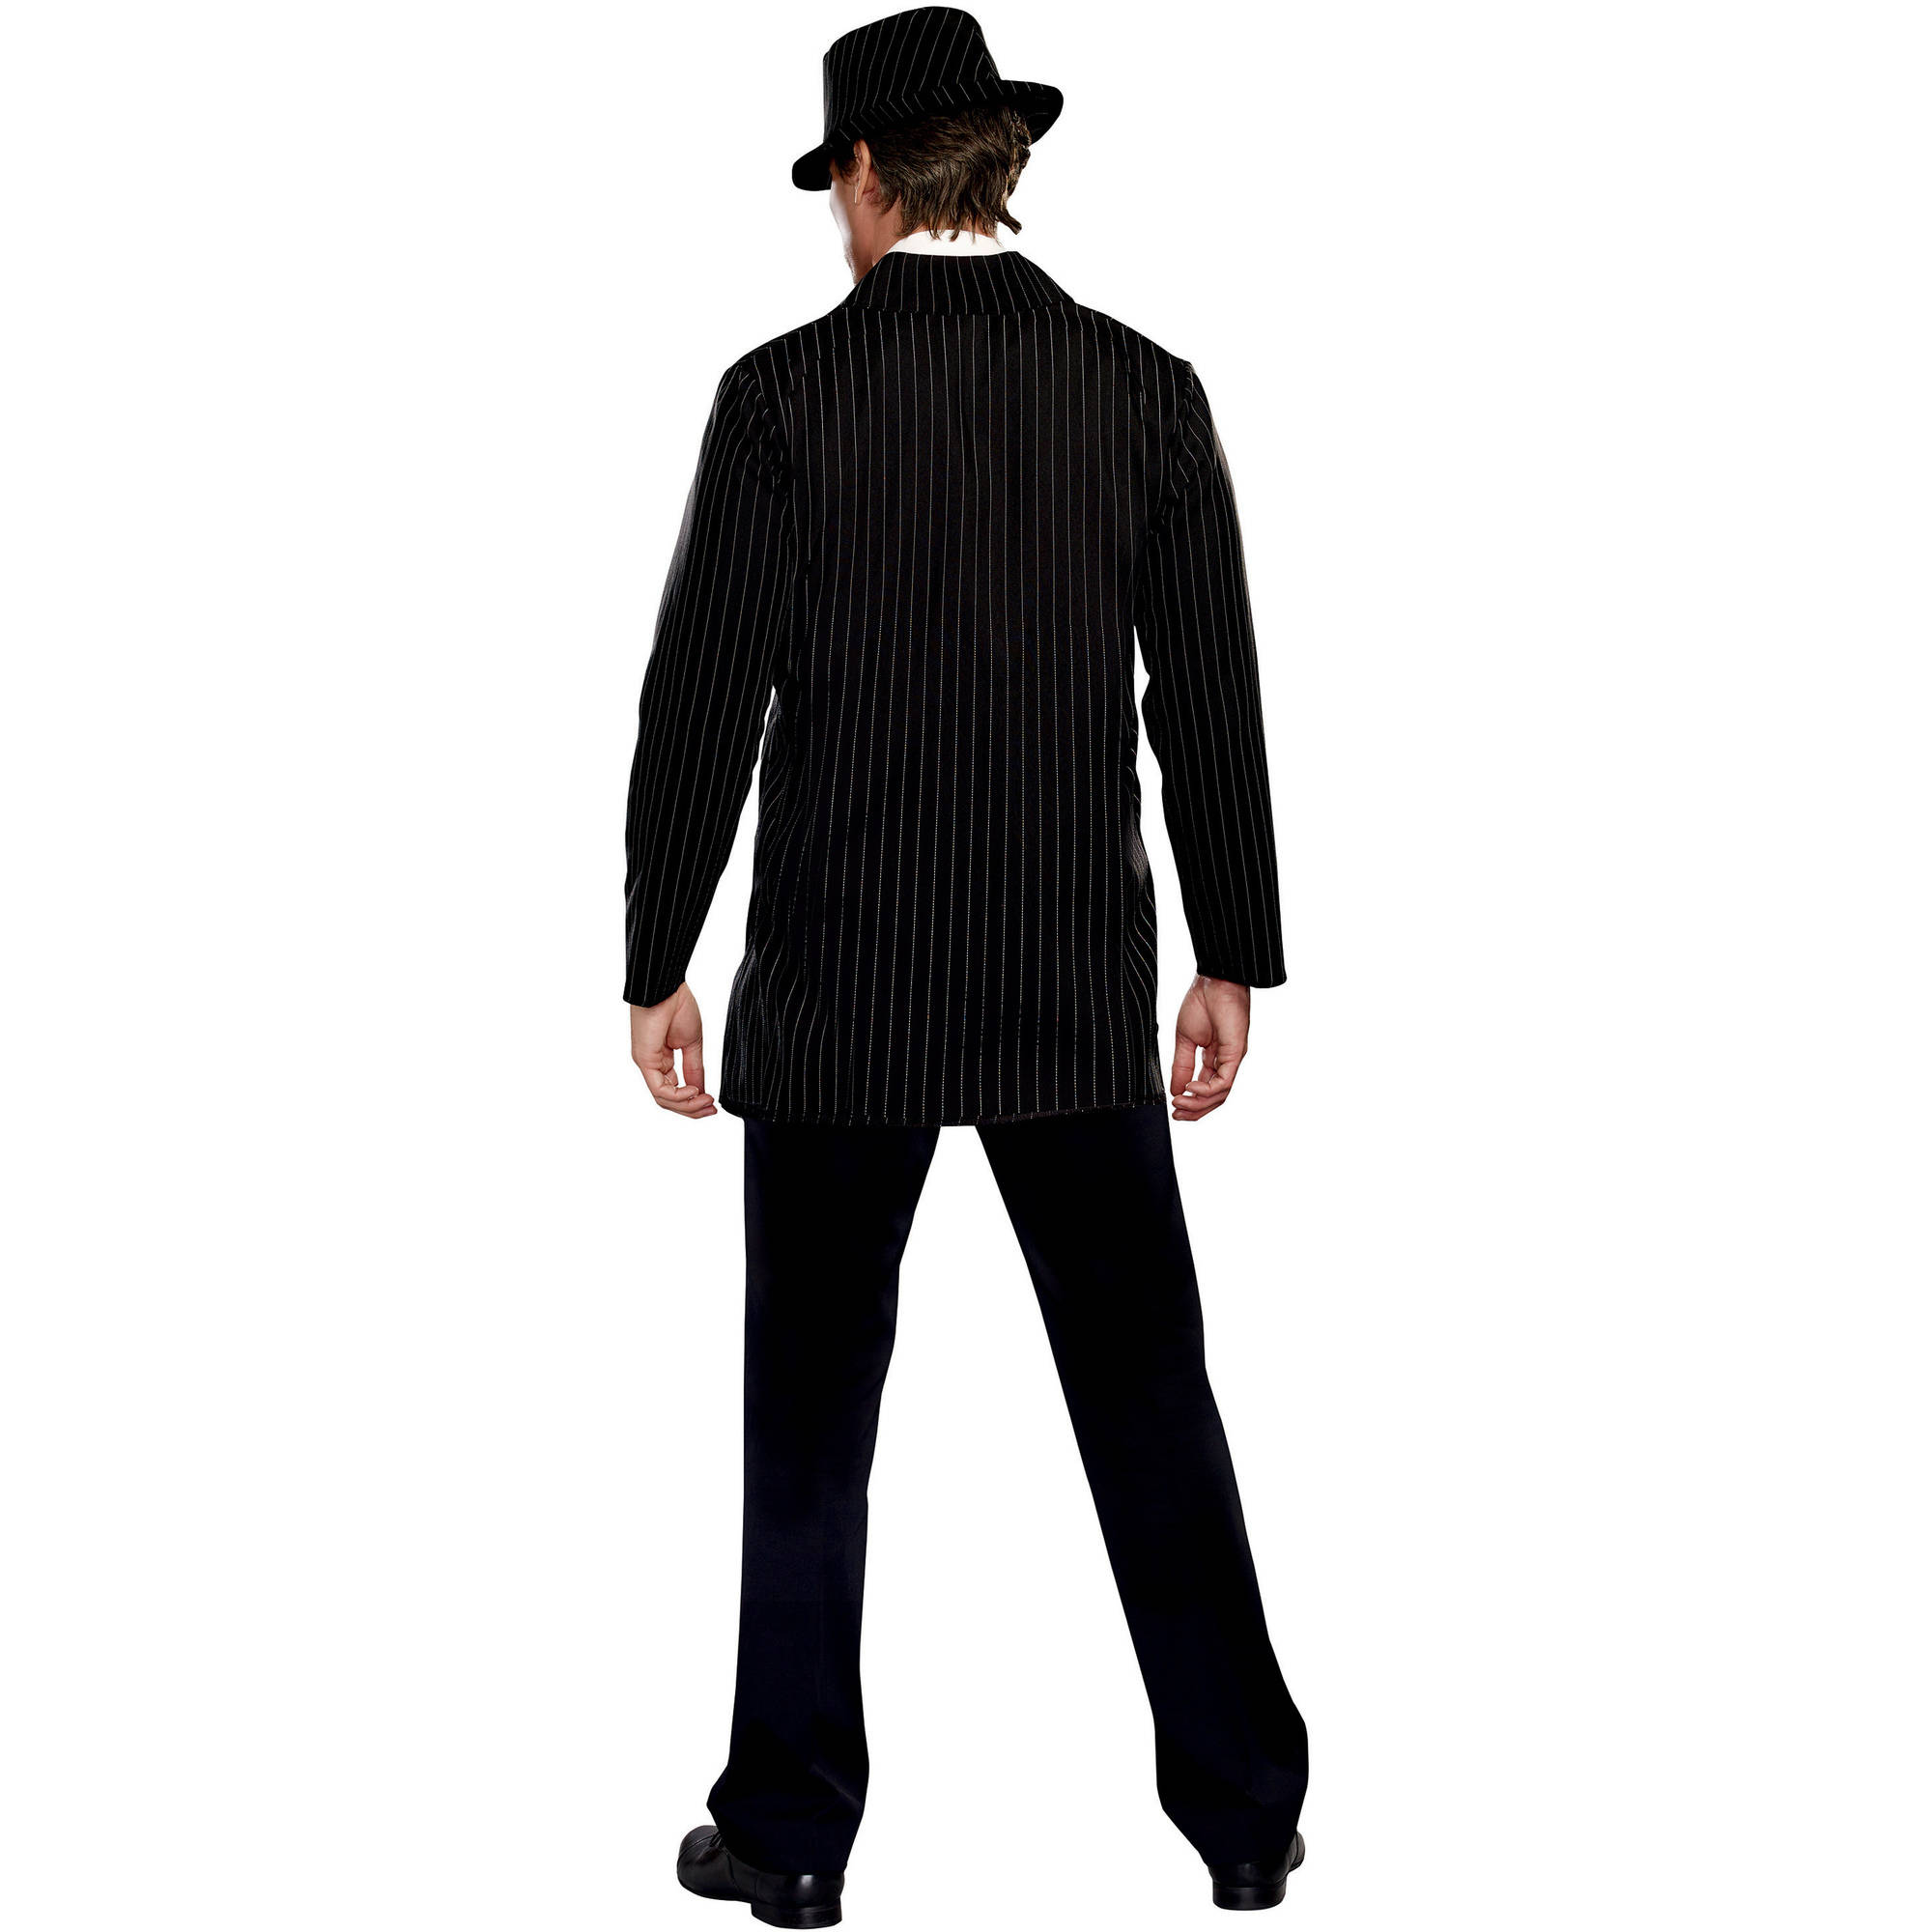 Gangster Guy Adult Mens Halloween Costume Walmartcom